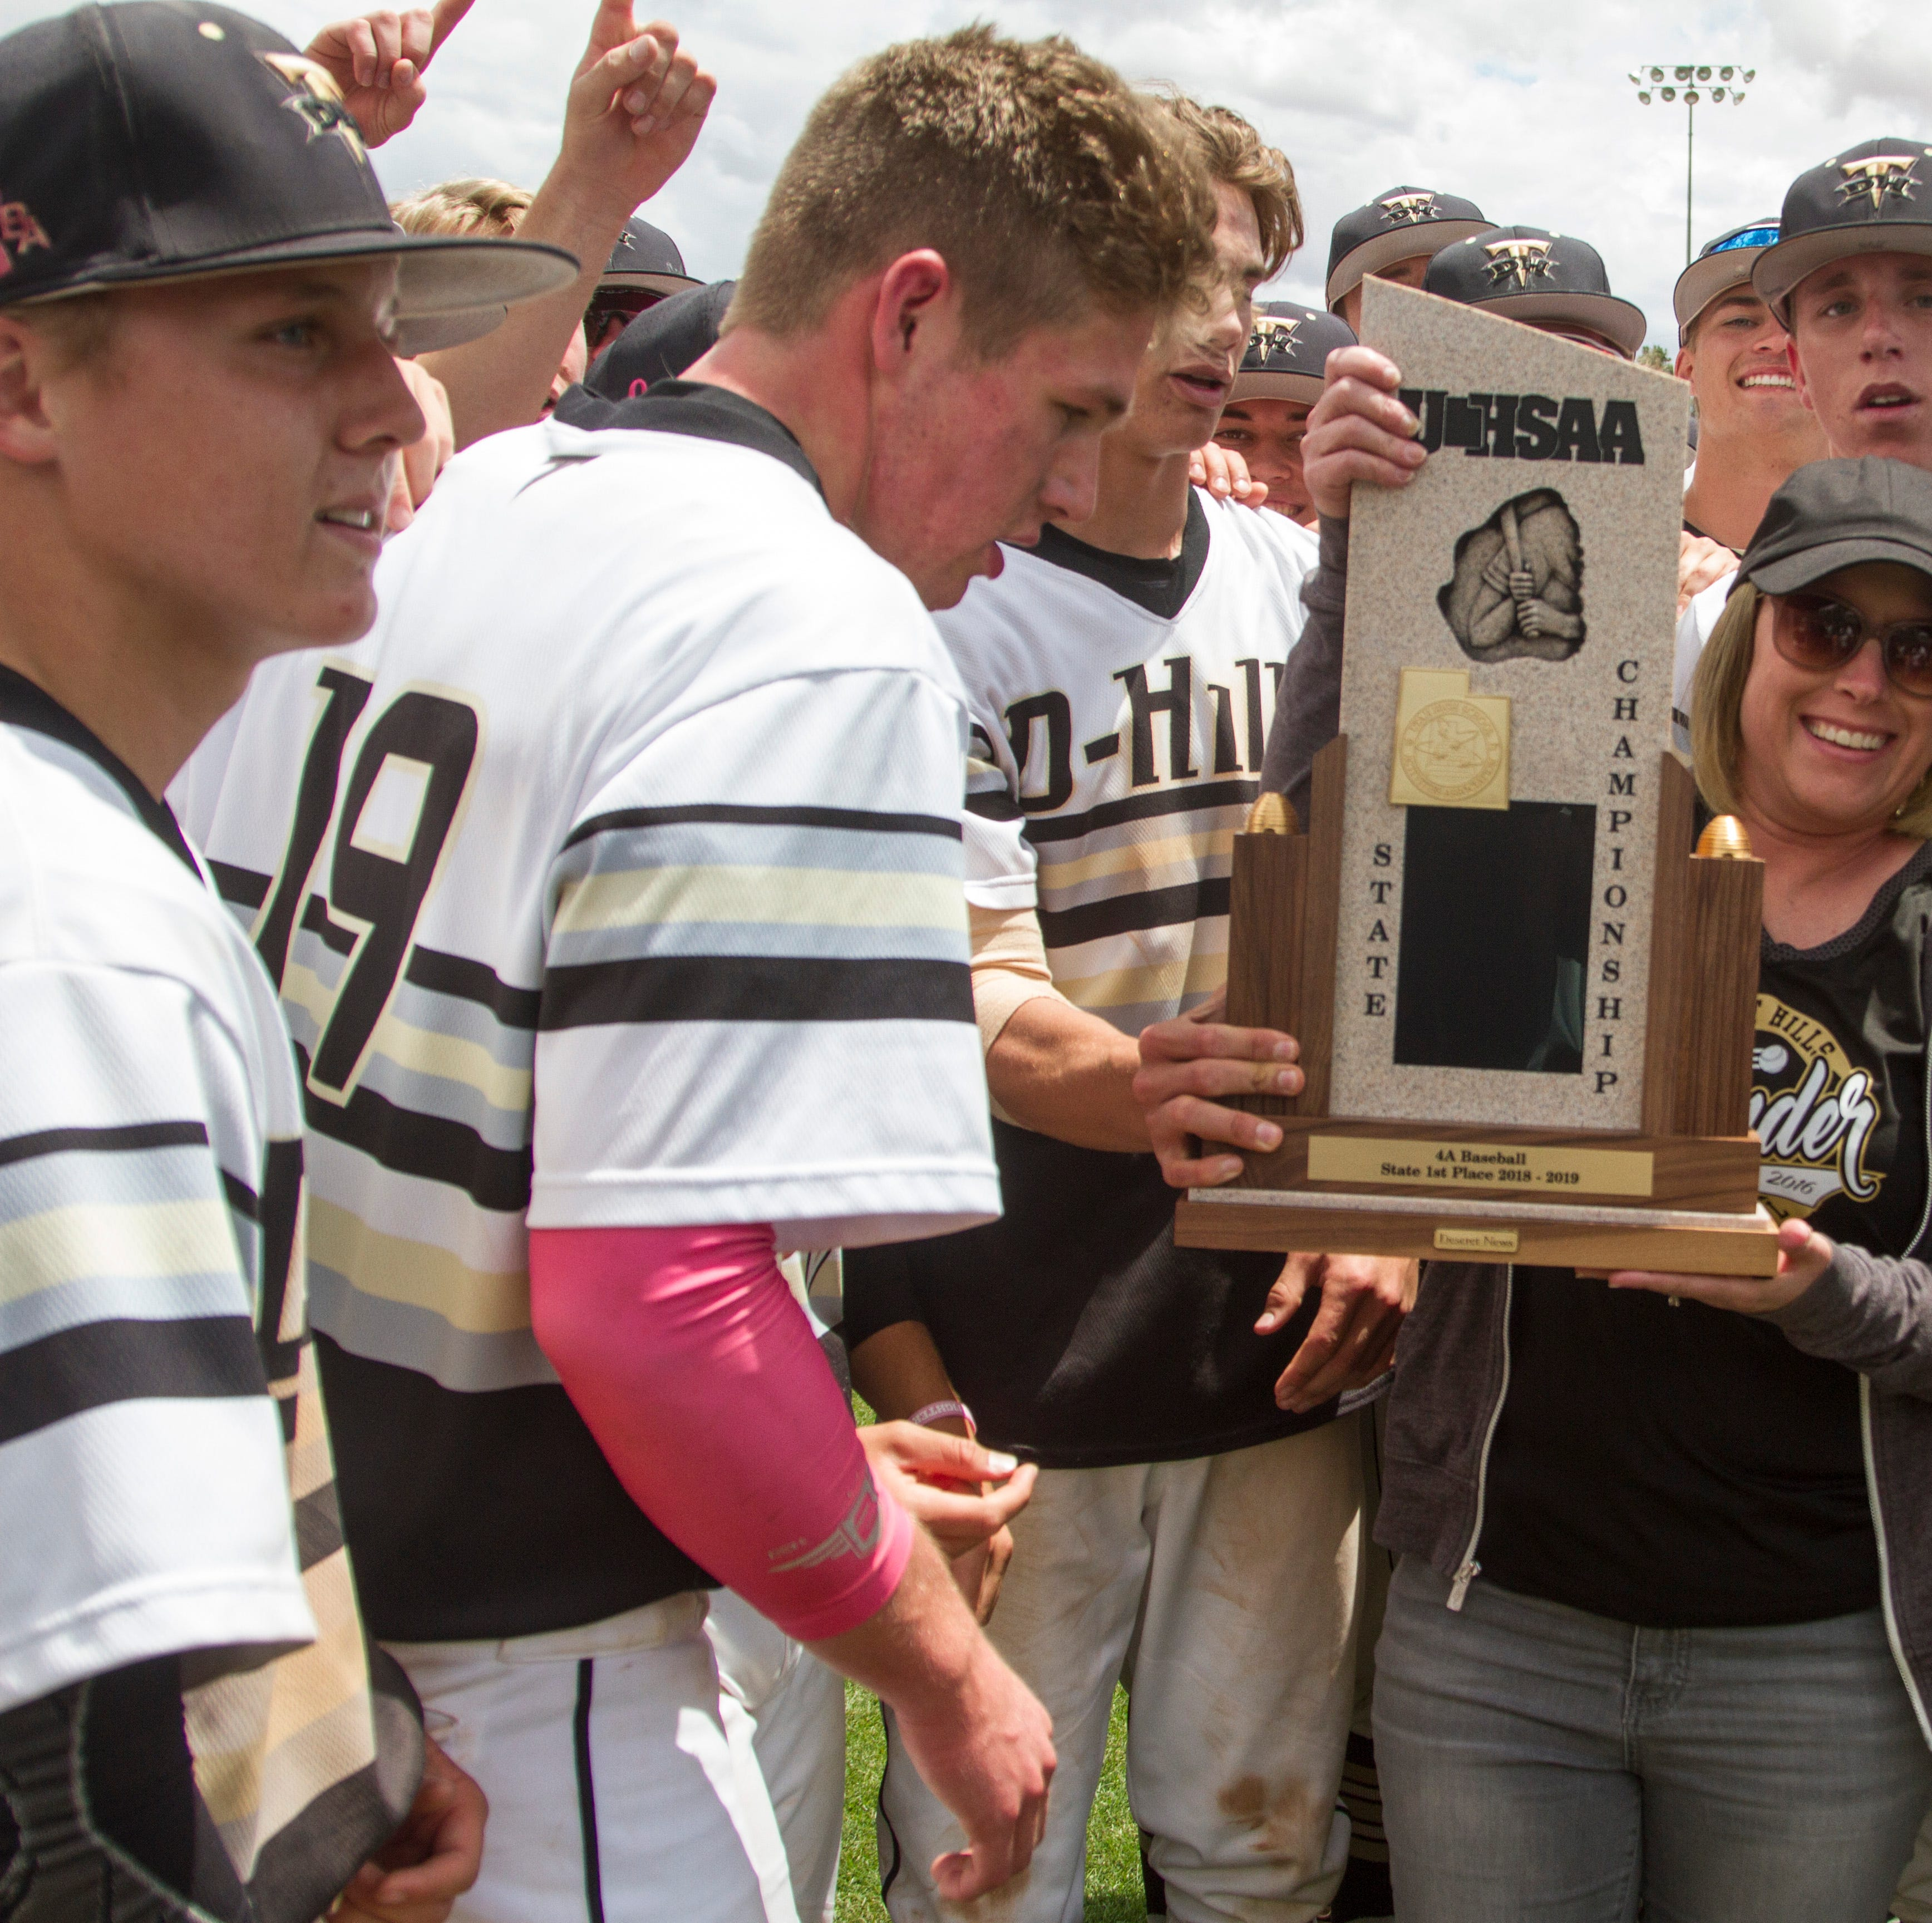 Desert Hills dedicates state championship to coach's wife as she fights to beat breast cancer